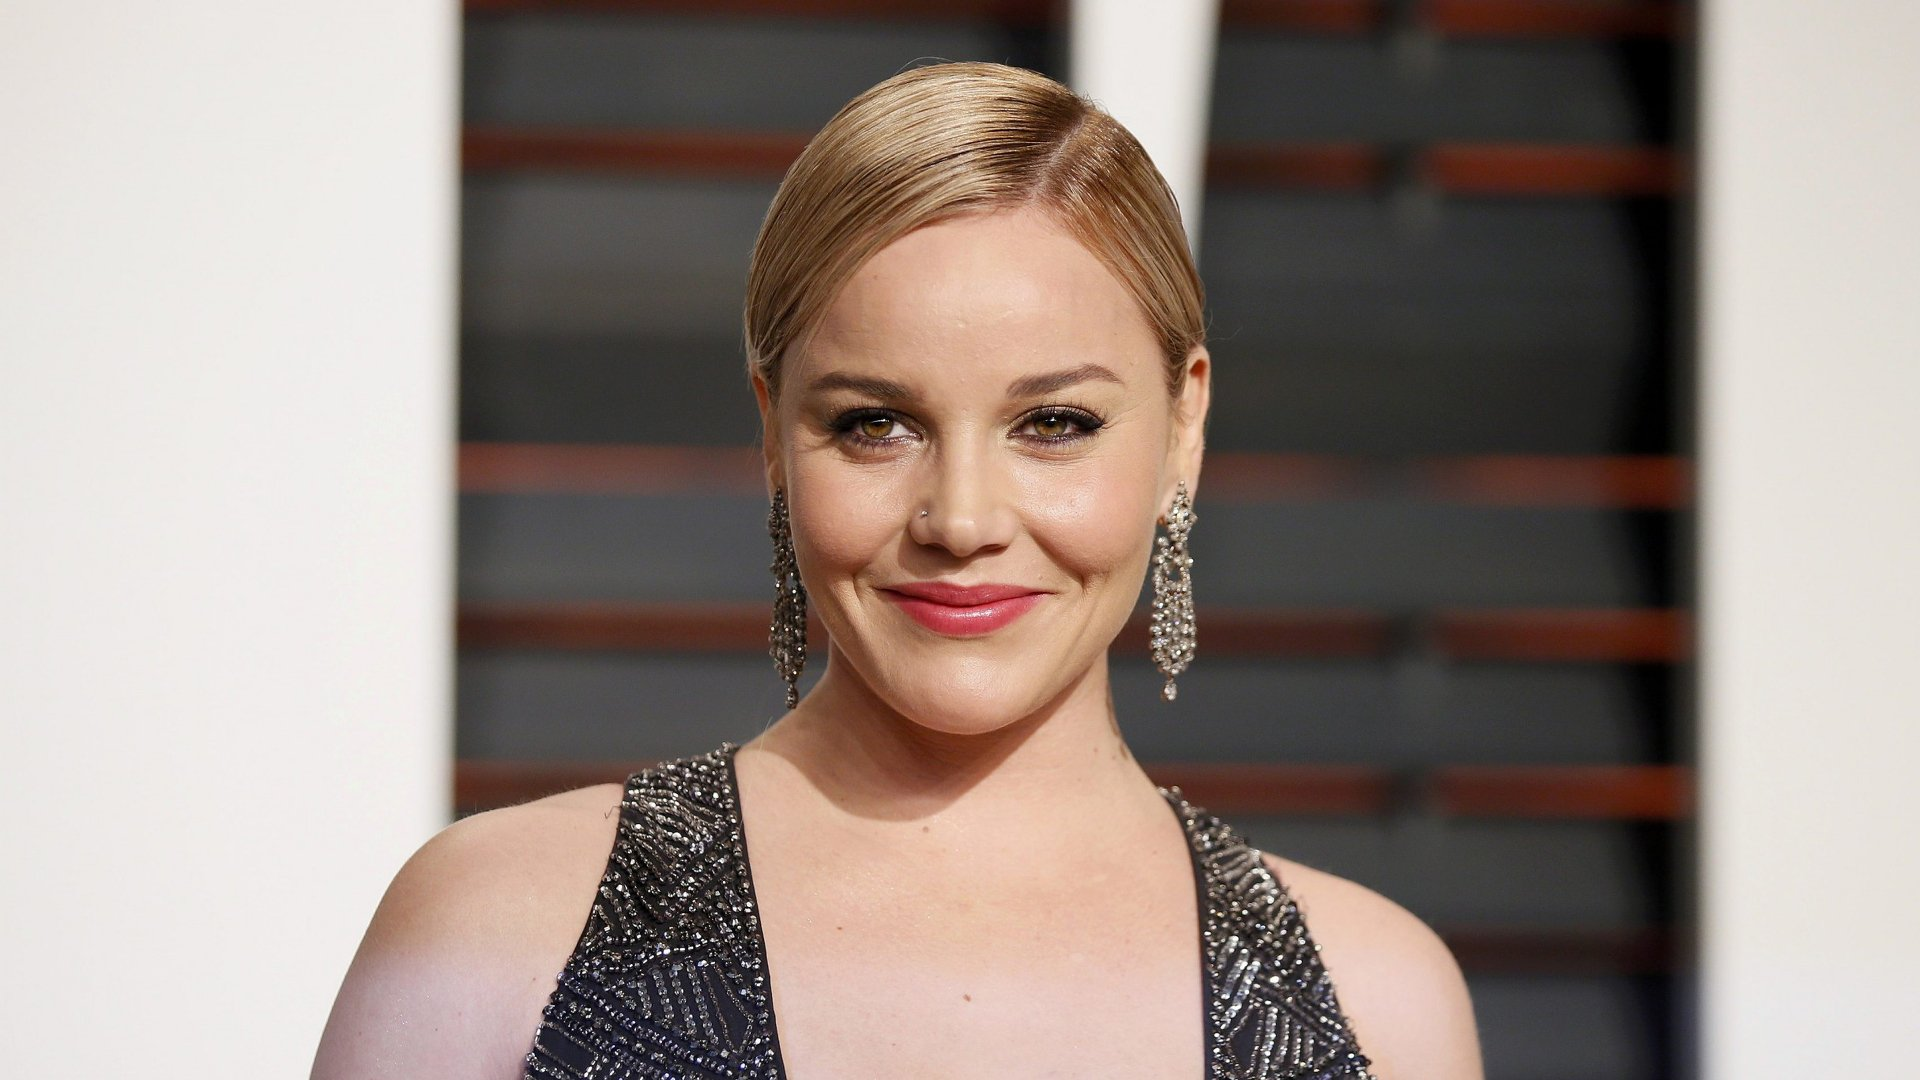 Celebrites Abbie Cornish